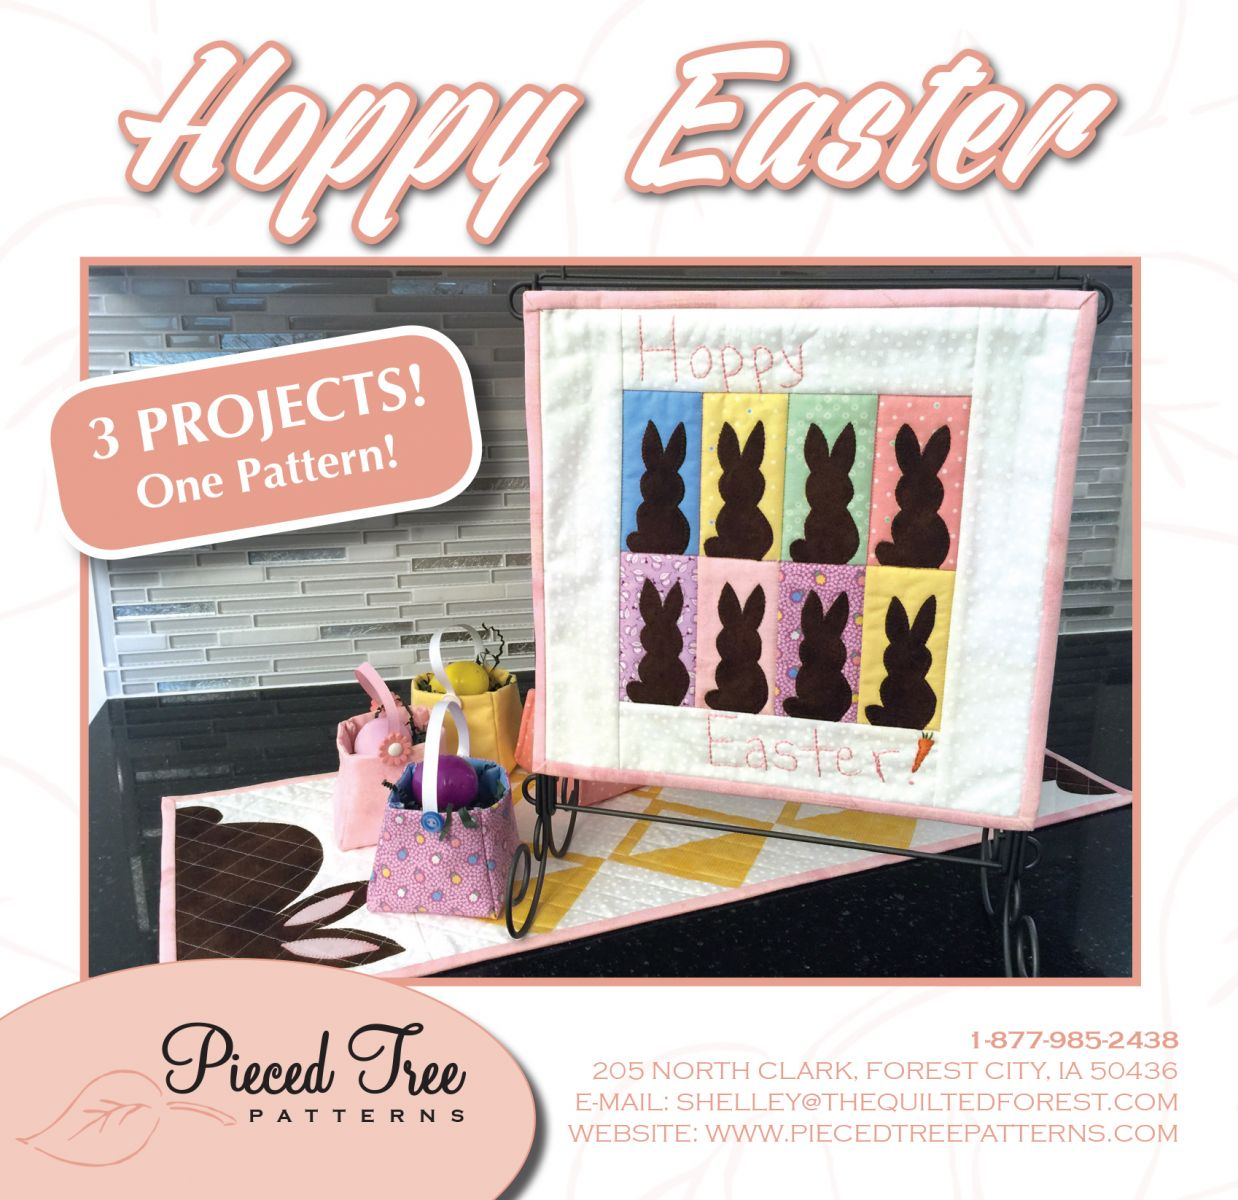 Pieced Tree Patterns - Easy to Piece. Easy to Enjoy!